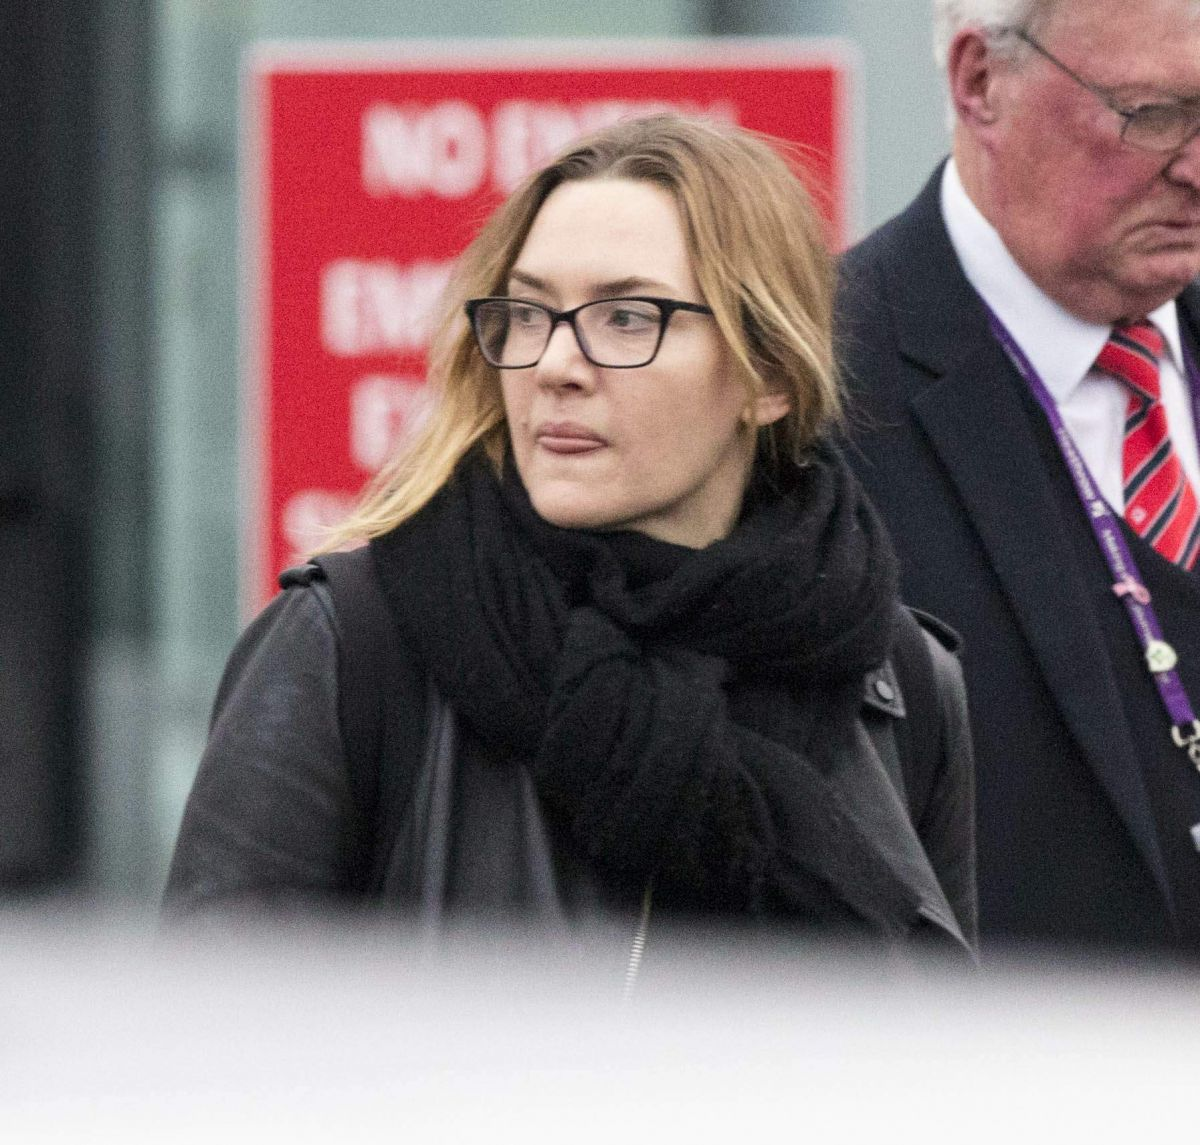 kate-winslet-out-and-about-in-london-12-20-2018-1.jpg